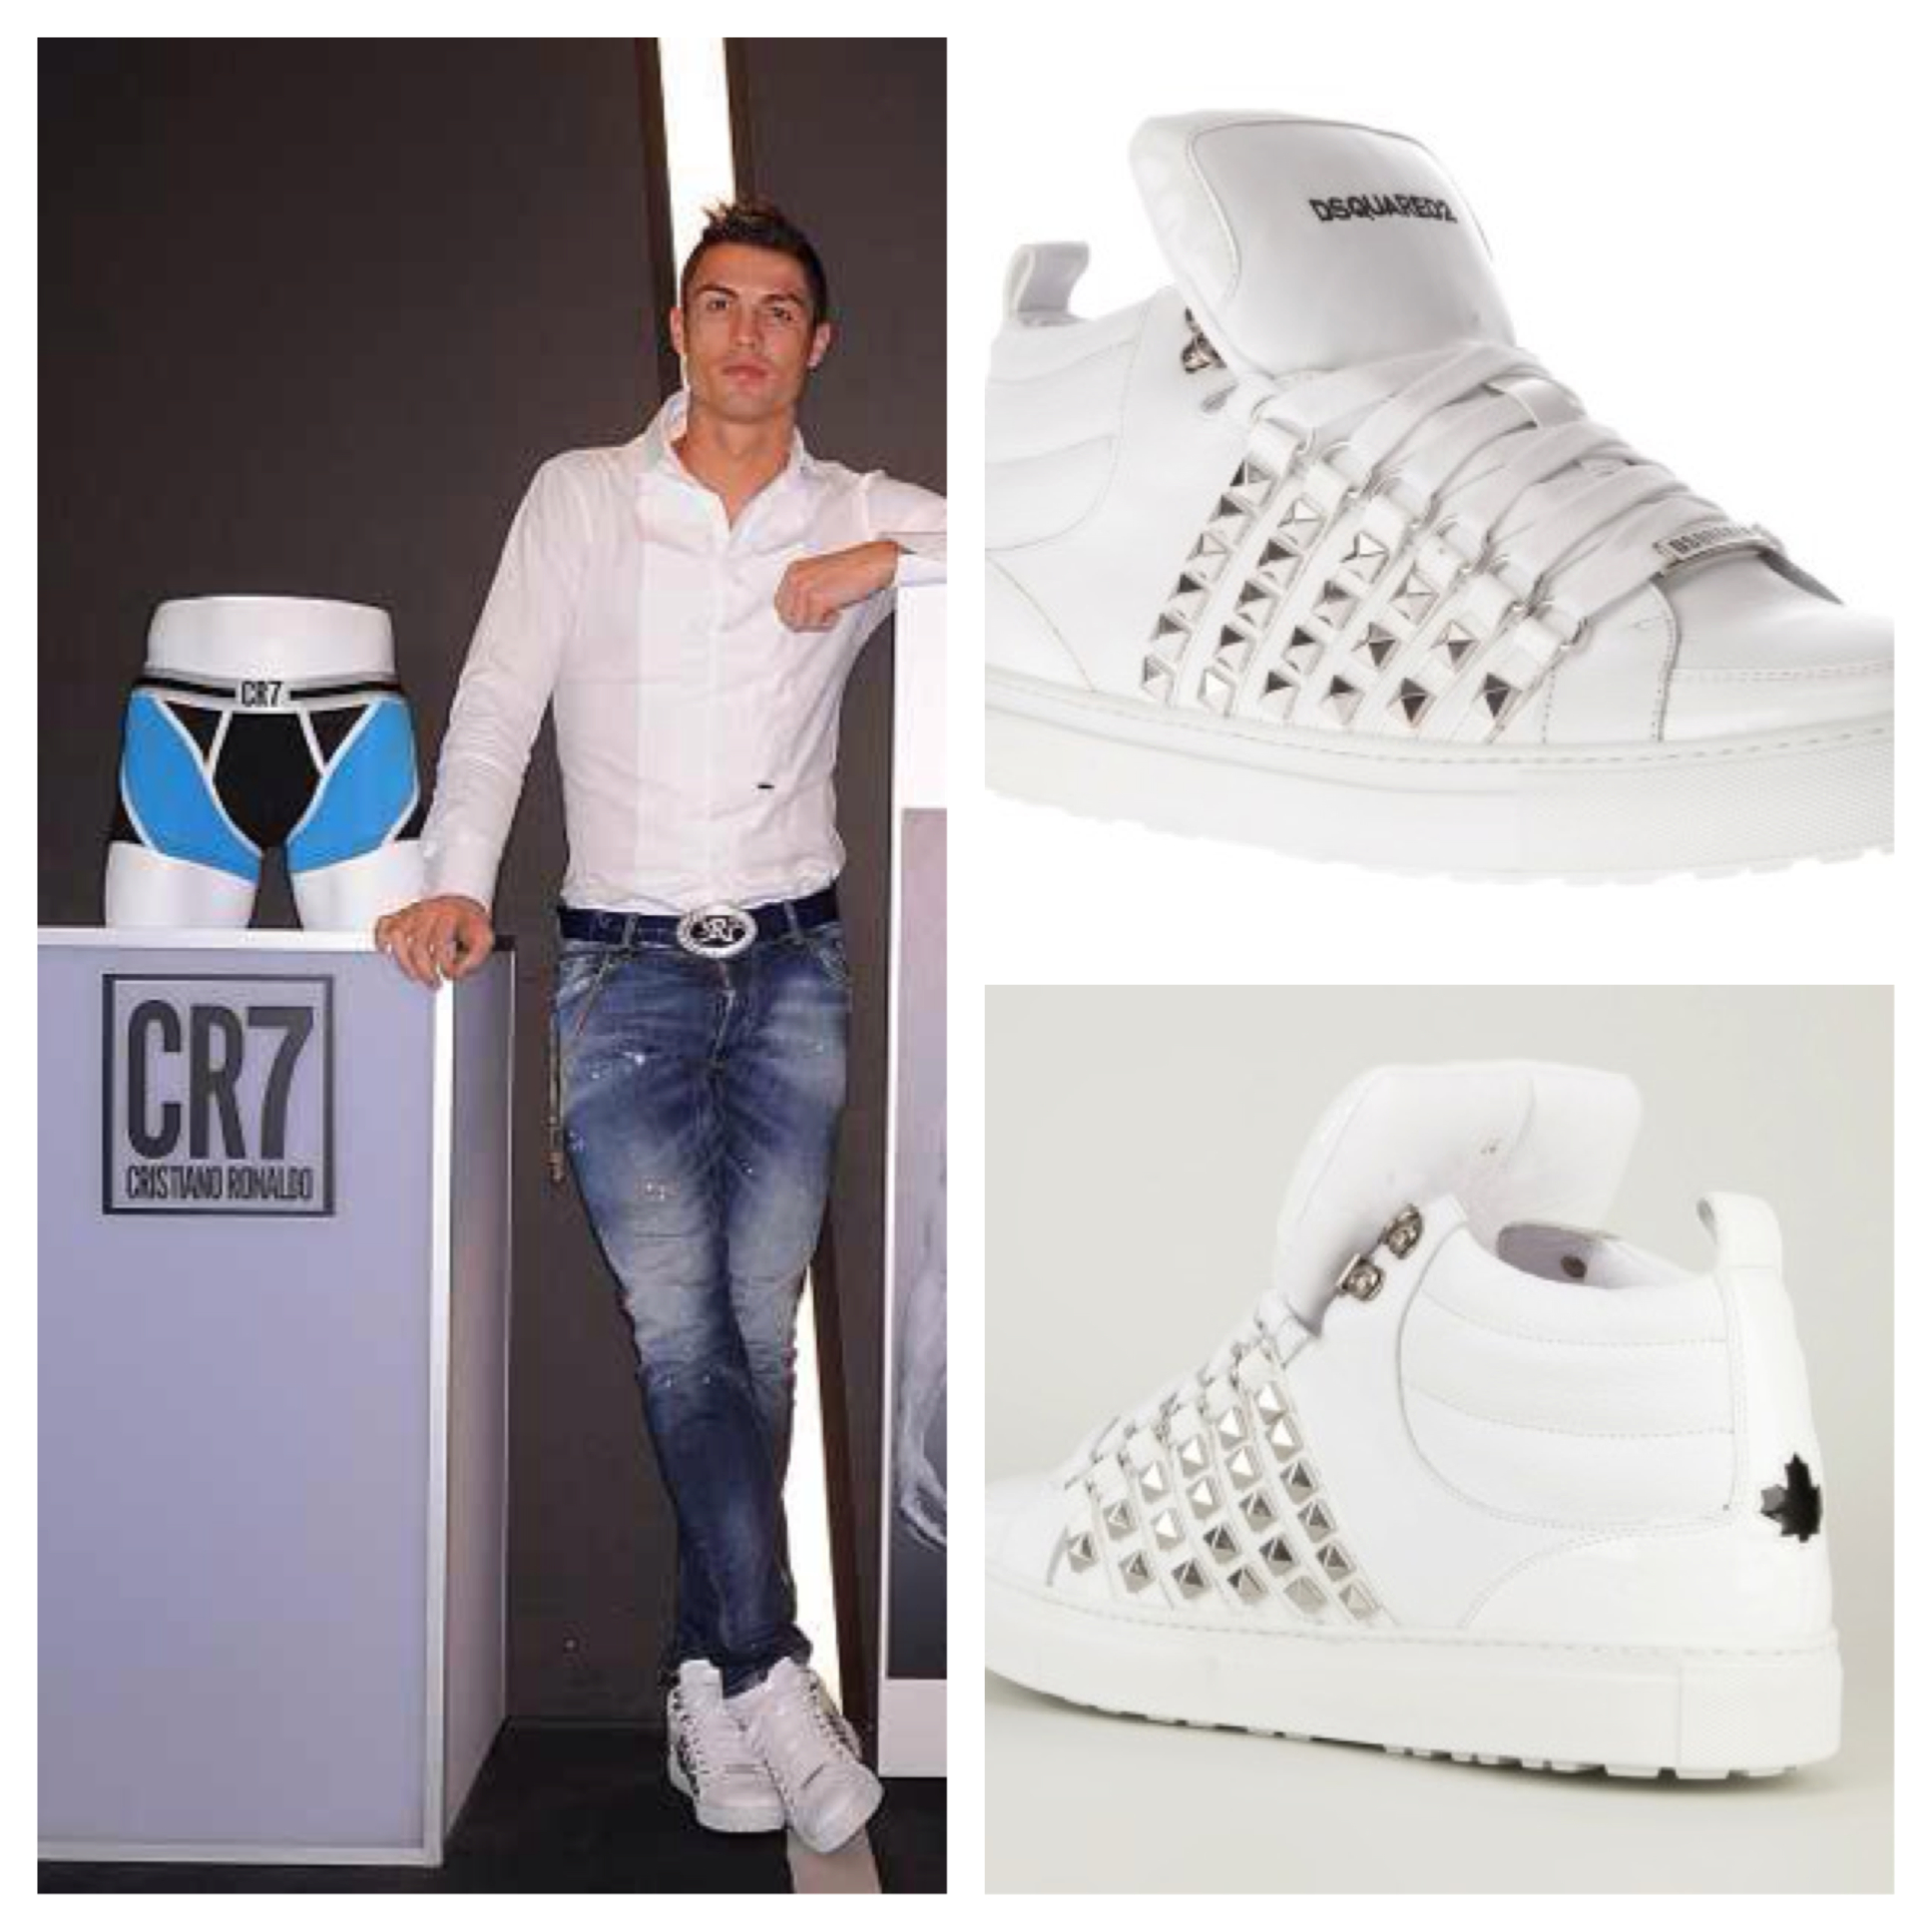 Cristiano-Ronaldo-CR7-Underwear-Launcg-Dsquared2-high-top-stud-sneakers